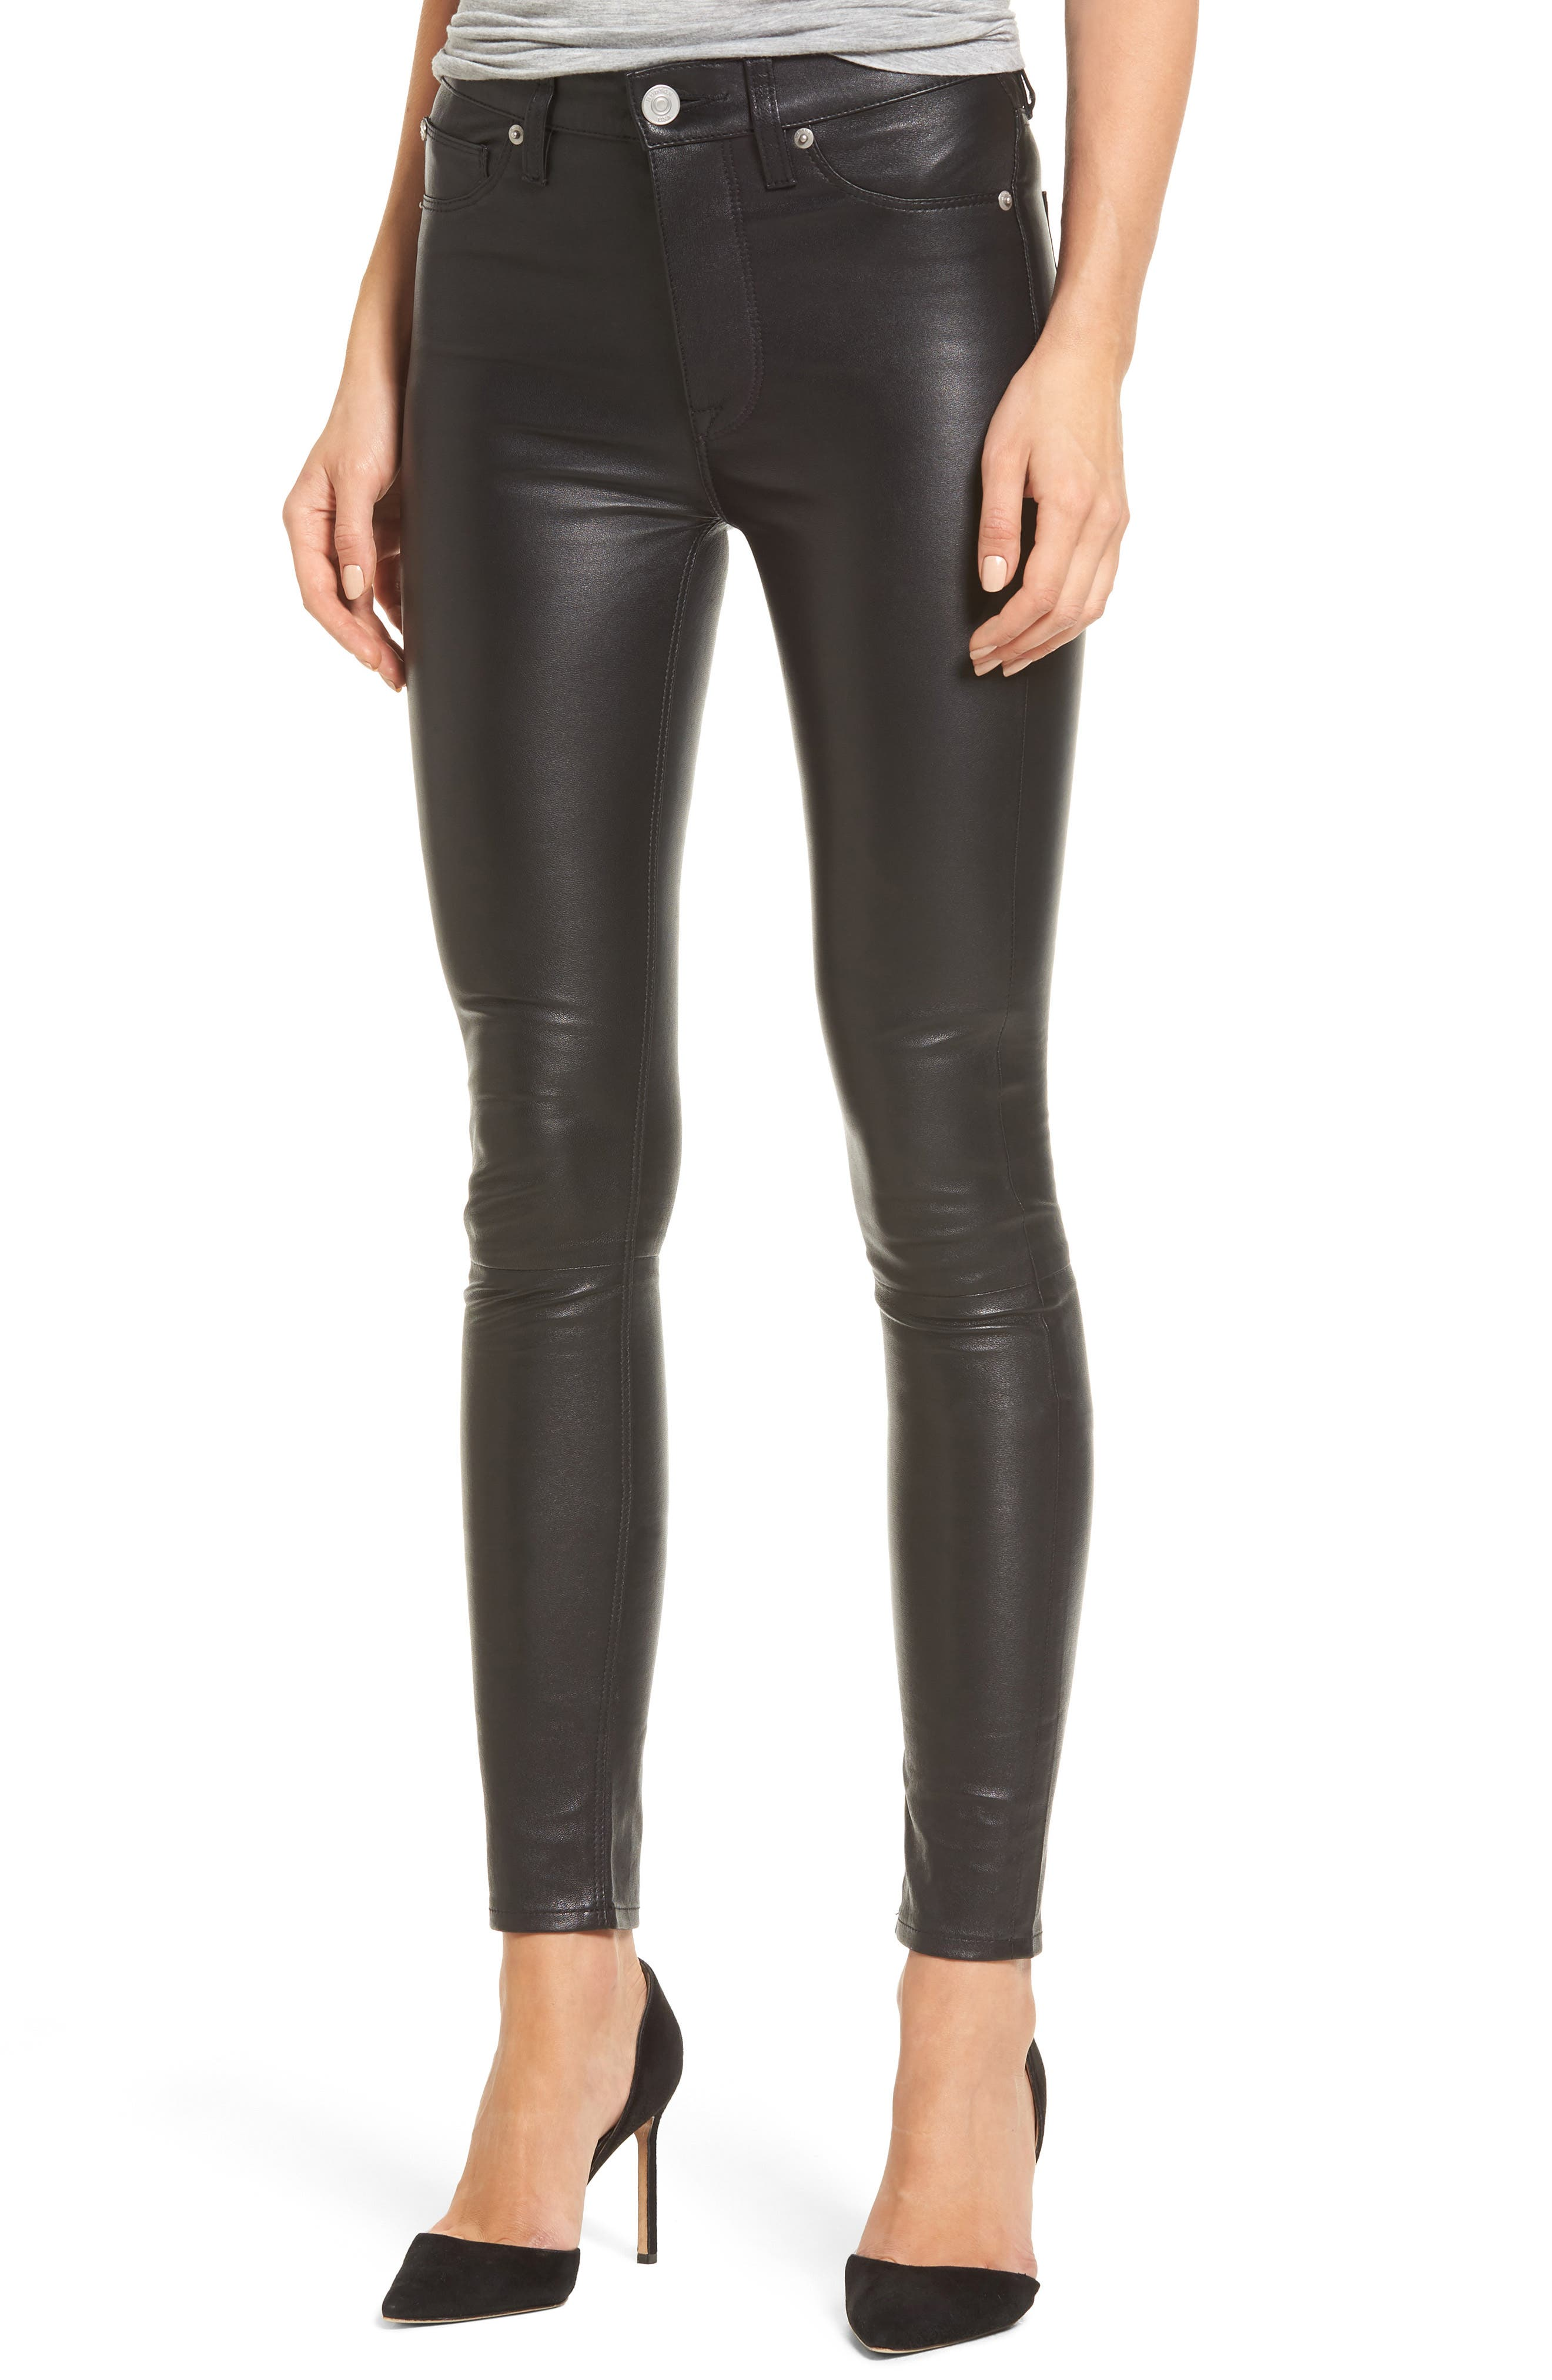 Barbara High Waist Ankle Skinny Leather Pants,                             Main thumbnail 1, color,                             Black Leather